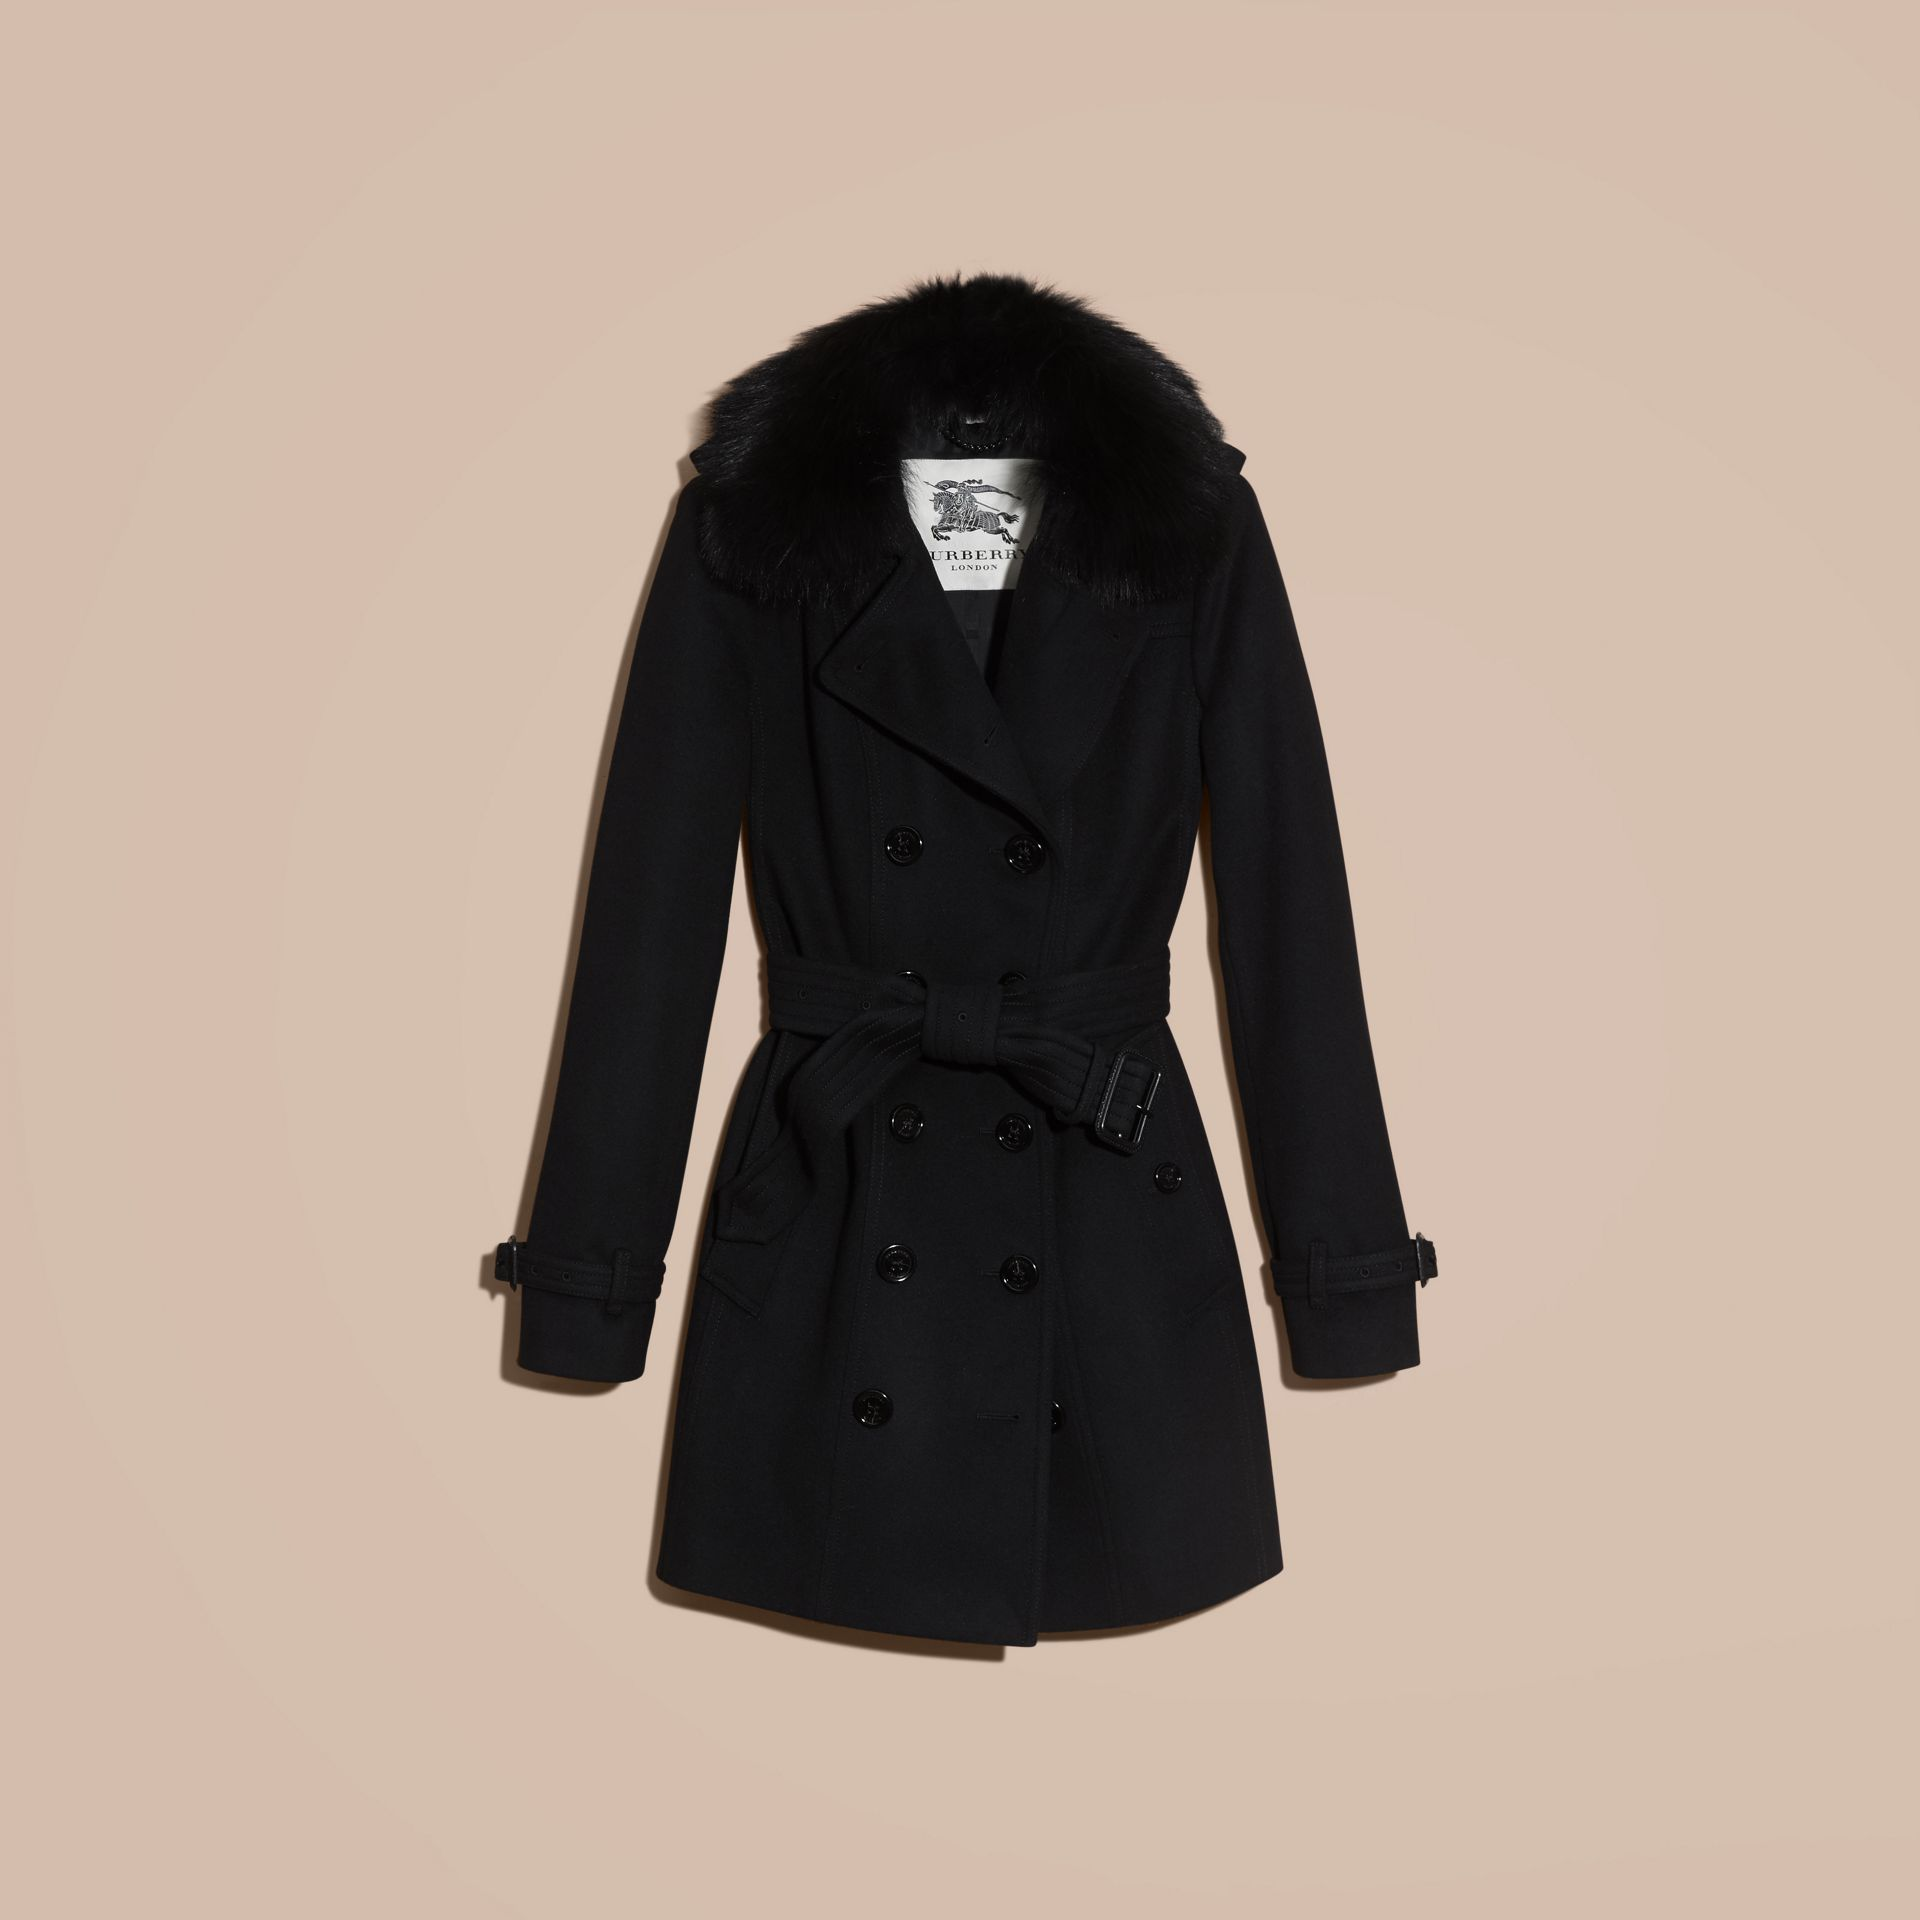 Wool Cashmere Trench Coat with Fur Collar in Black - Women | Burberry - gallery image 4